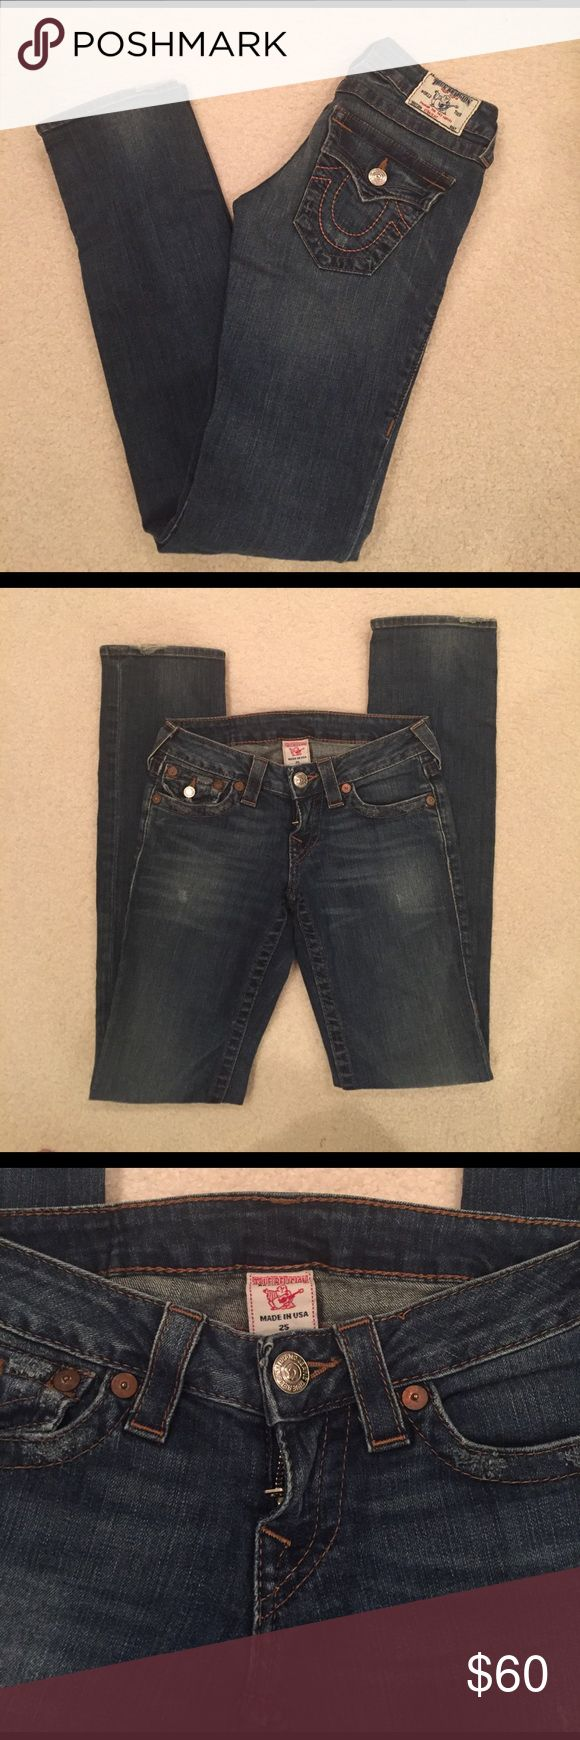 "Sale TODAYCute!True Religion Straight Jeans Cute!! True Religion Straight Leg Jeans. Inseam Approximately 31"" Worn With Love True Religion Jeans Straight Leg"